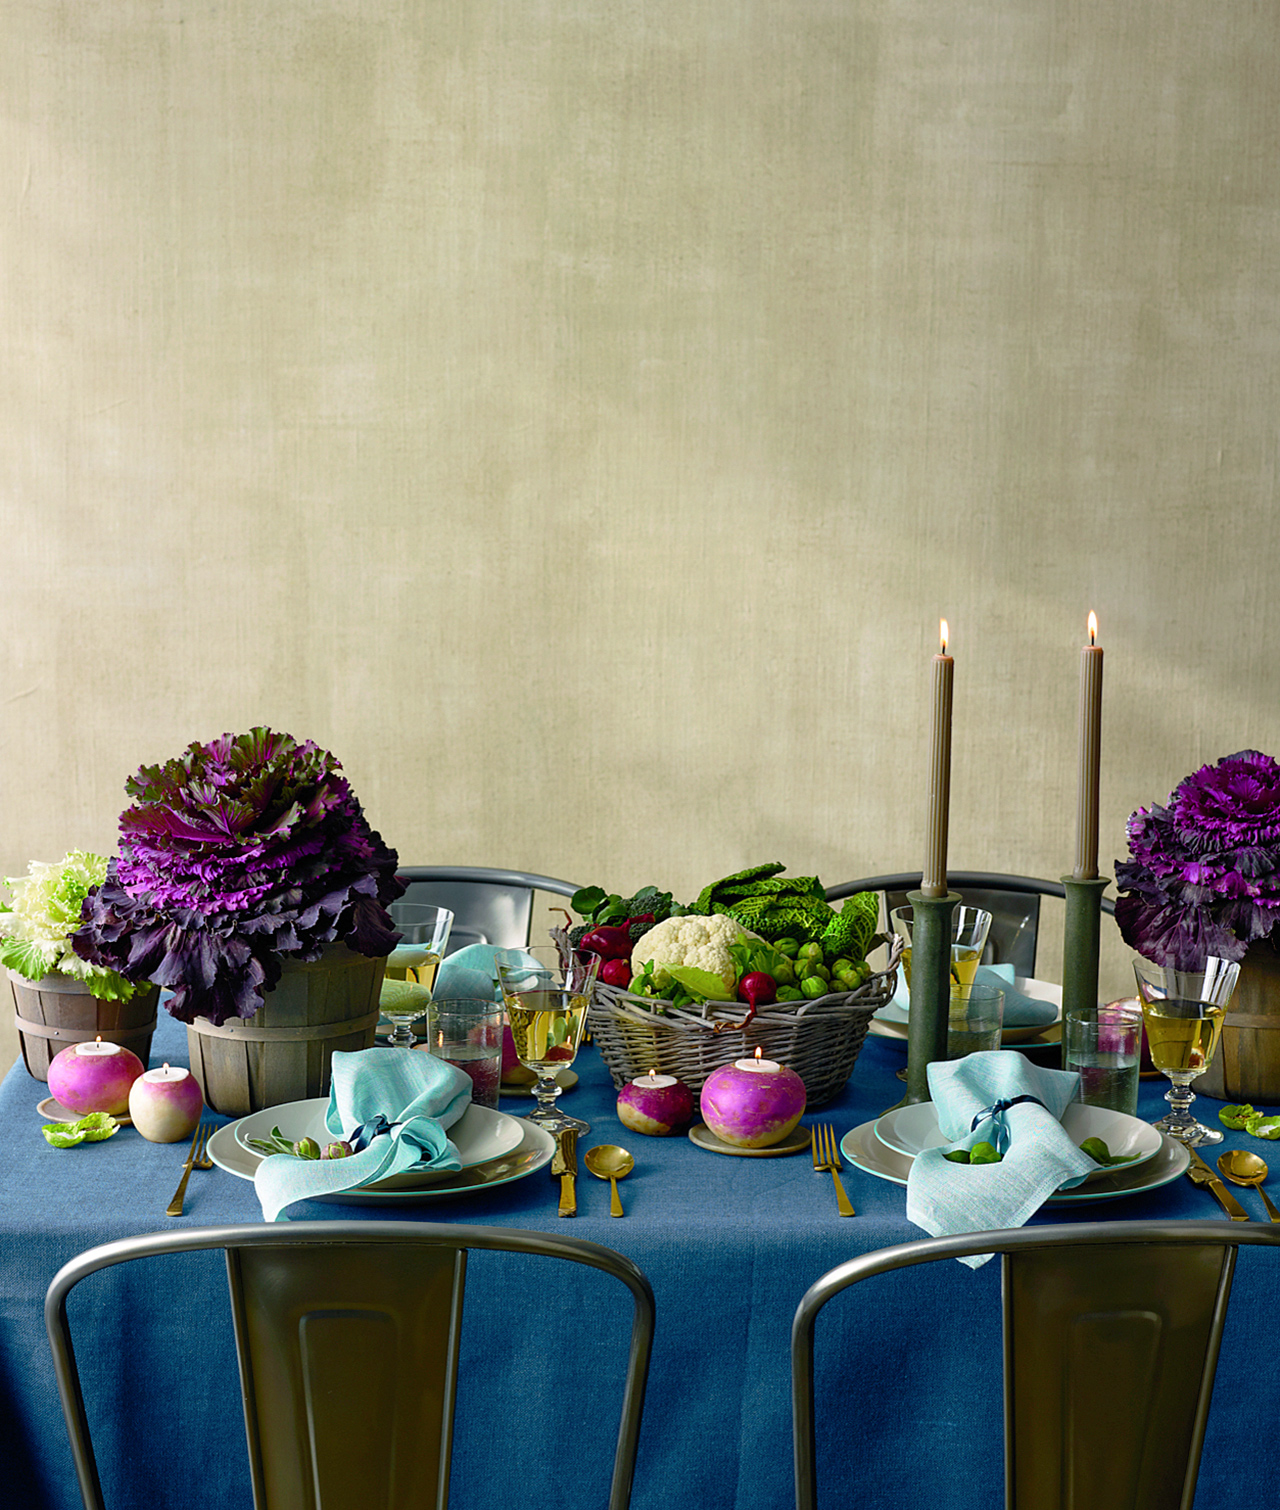 thanksgiving table setting turnip votives